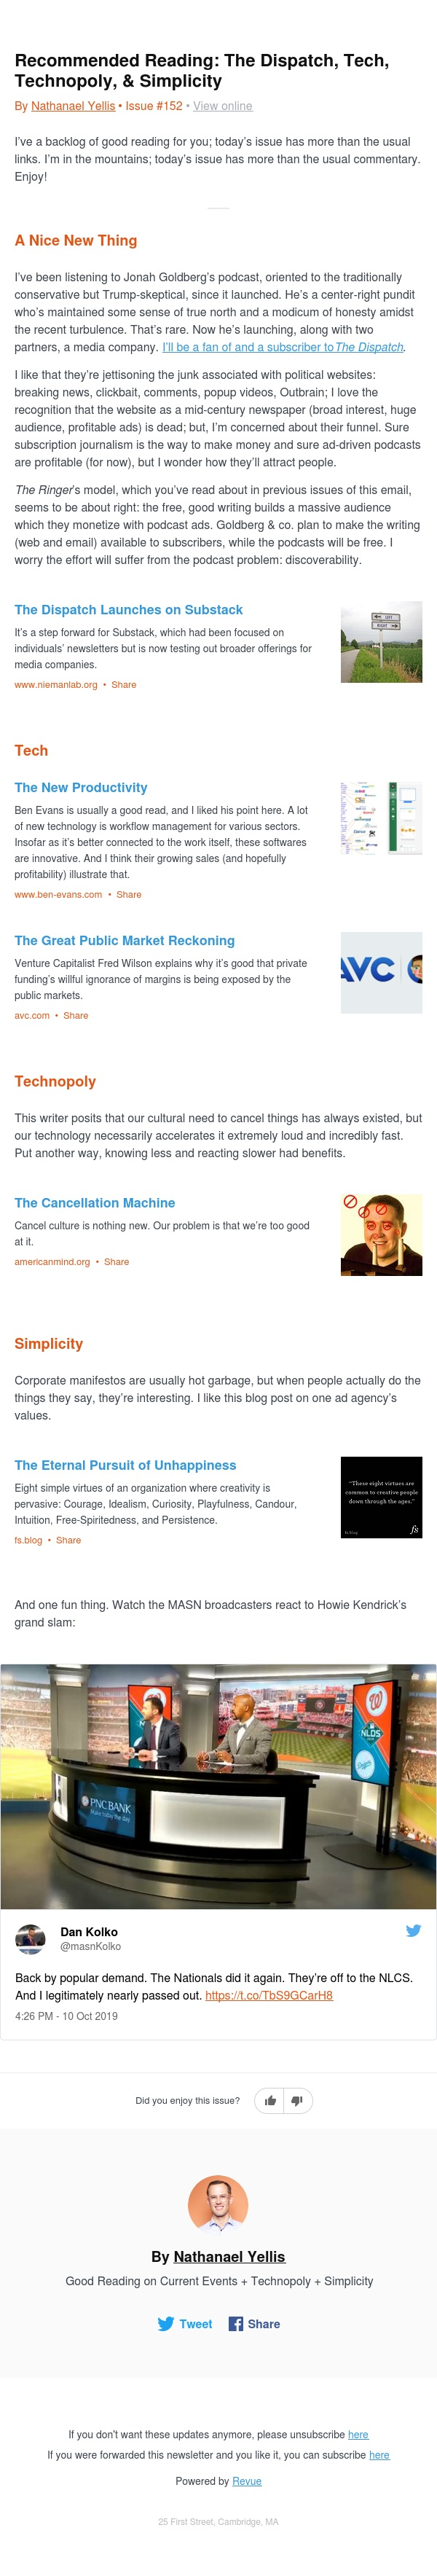 Recommended Reading: The Dispatch, Tech, Technopoly, & Simplicity